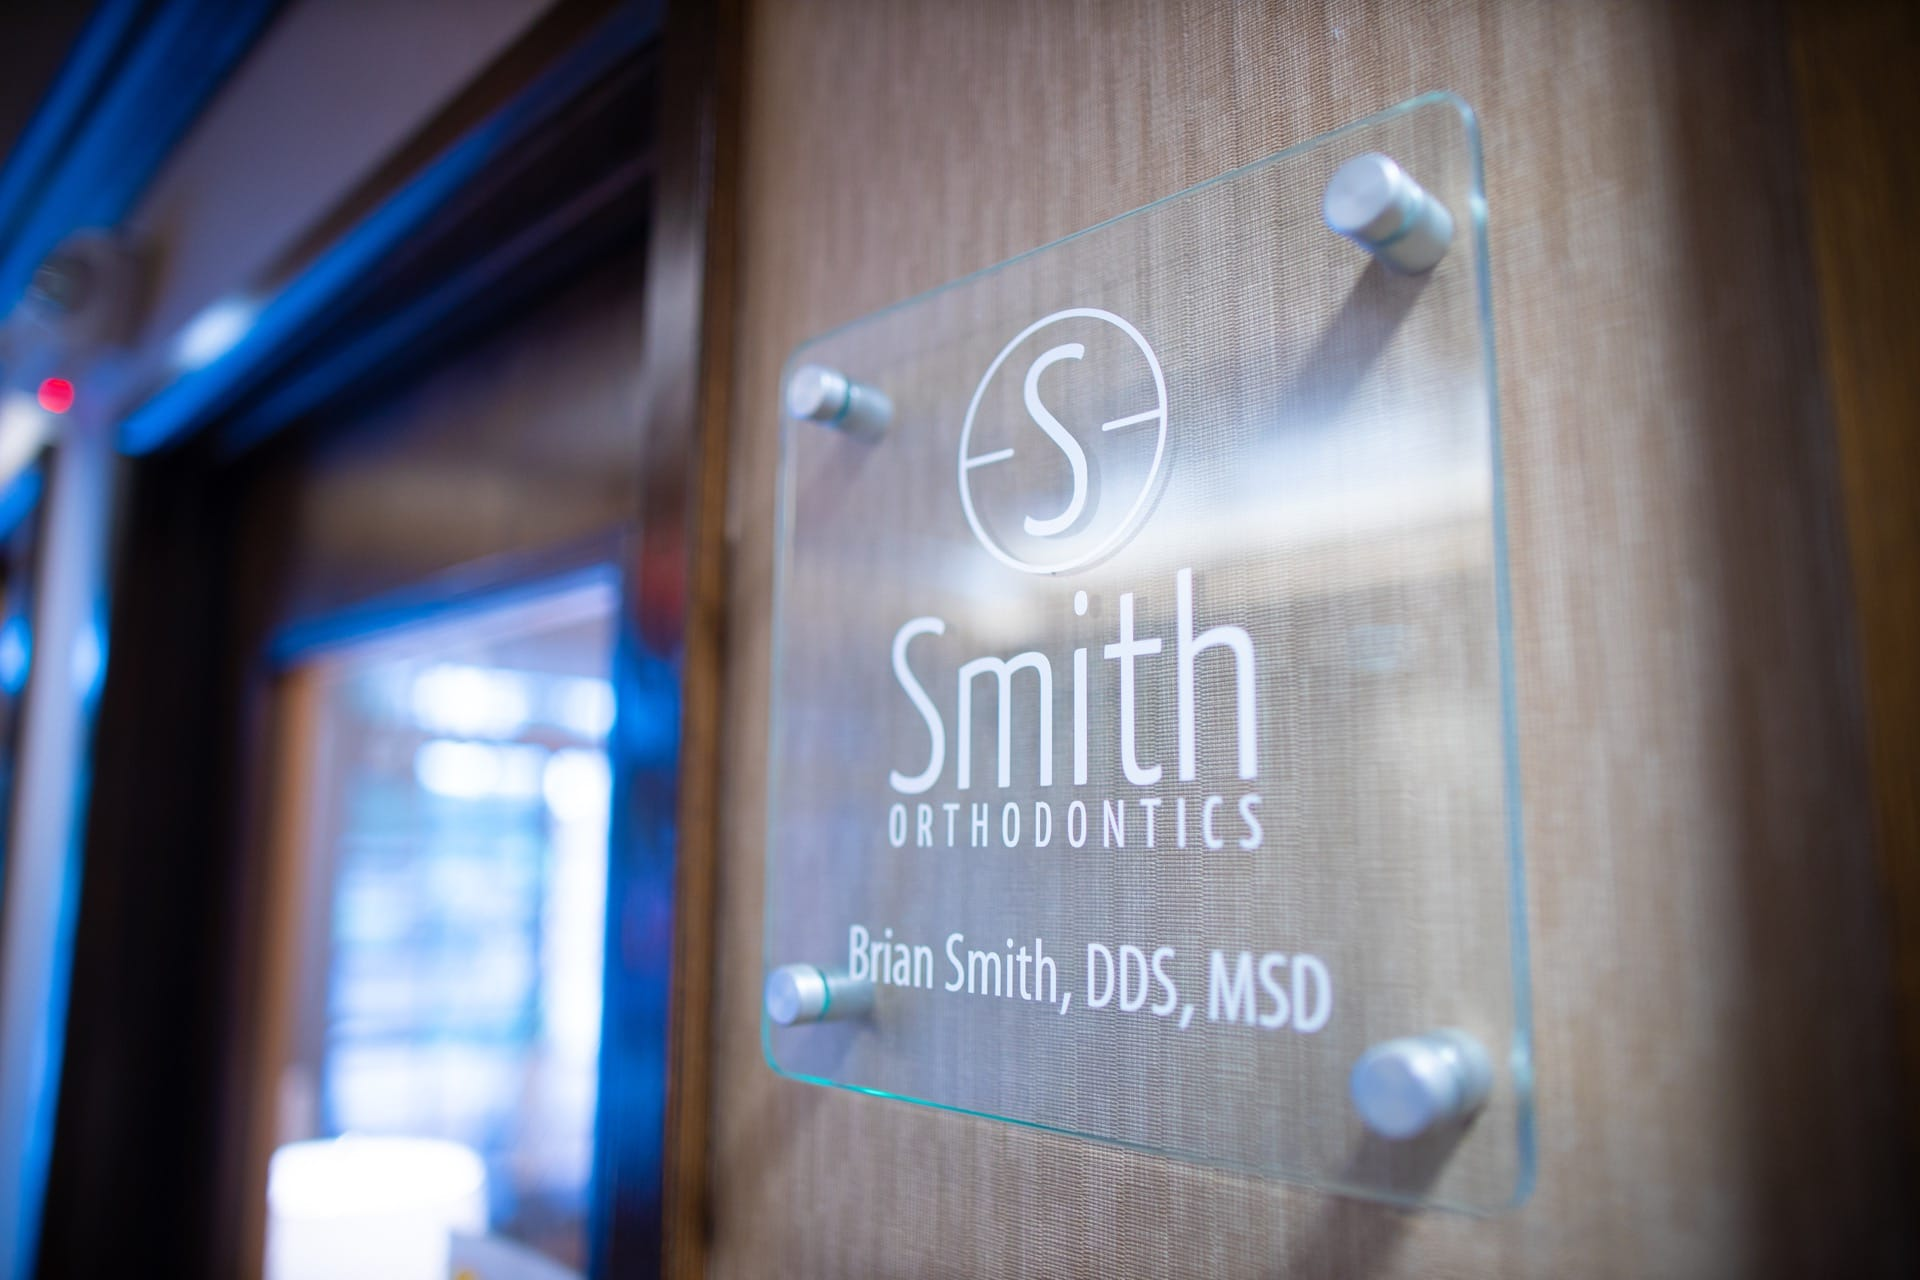 Smith Orthodontics: The Family Legacy